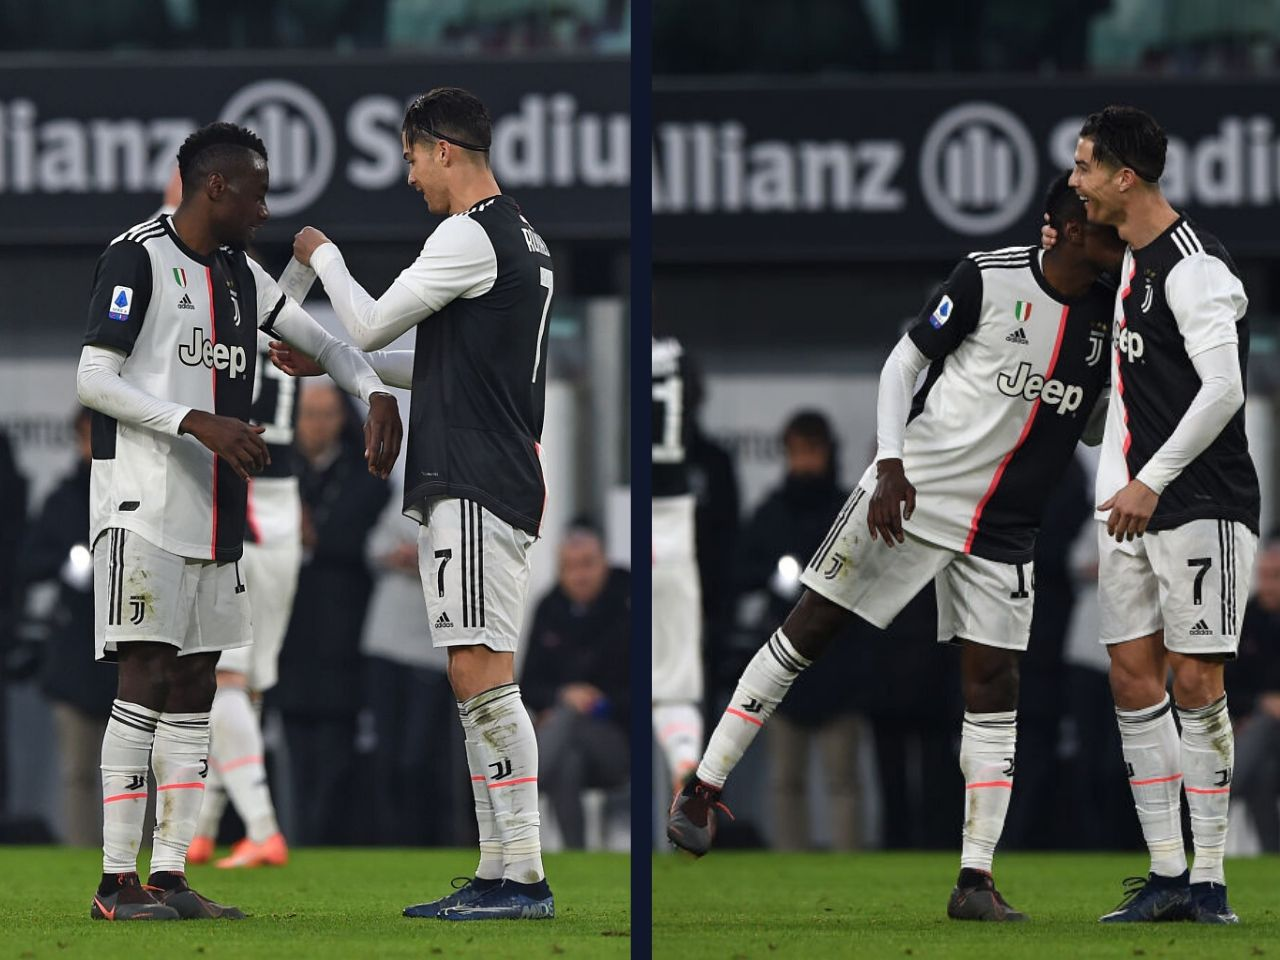 TOP MAN Humble Cristiano Ronaldo is handed Juventus captain's armband… but gives it to Matuidi as he's been there longer - Bóng Đá